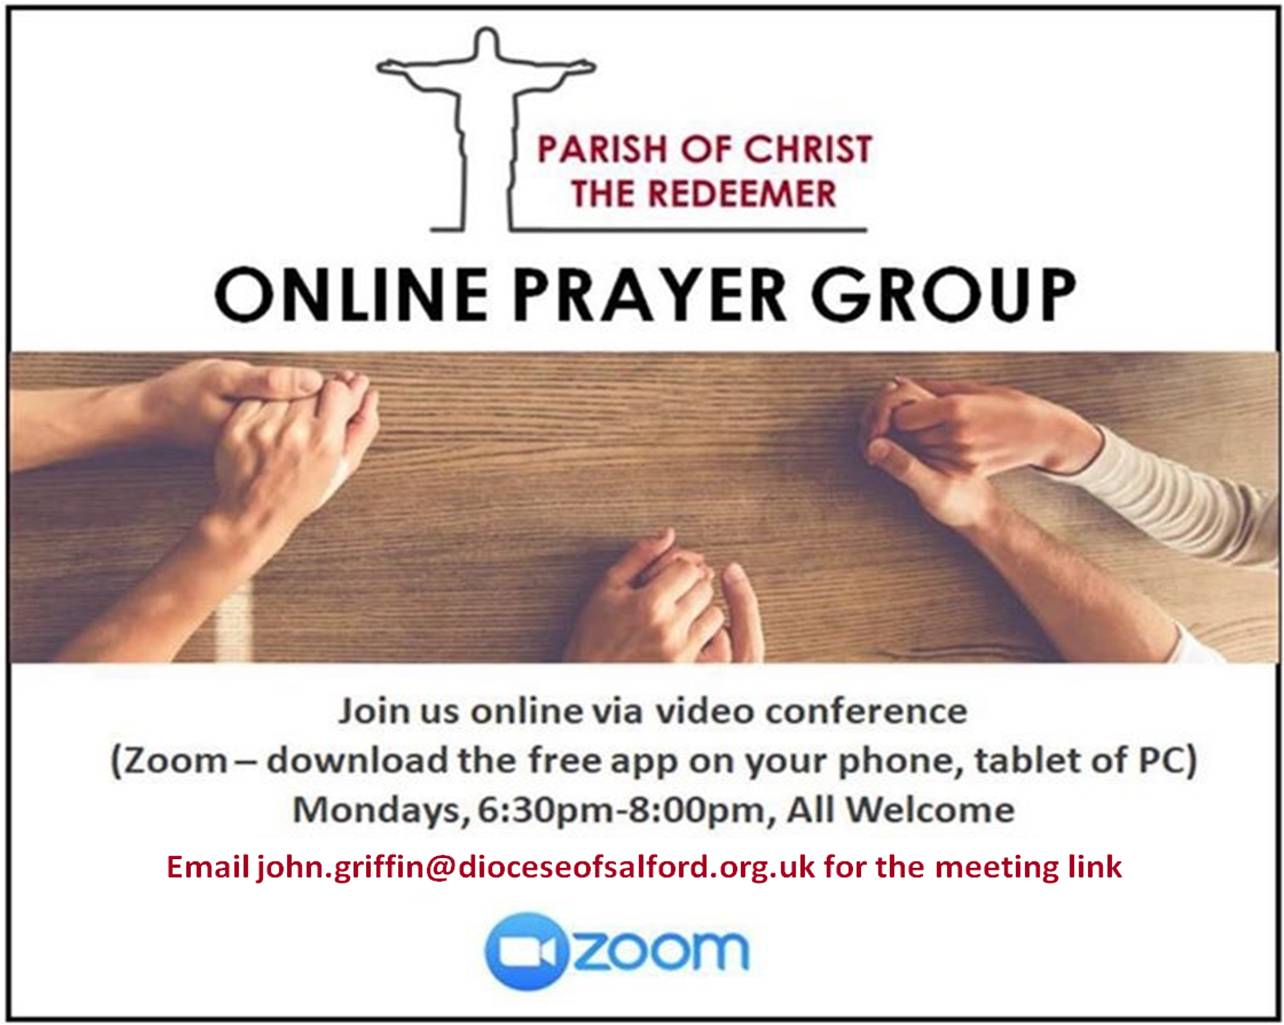 Online Prayer Group